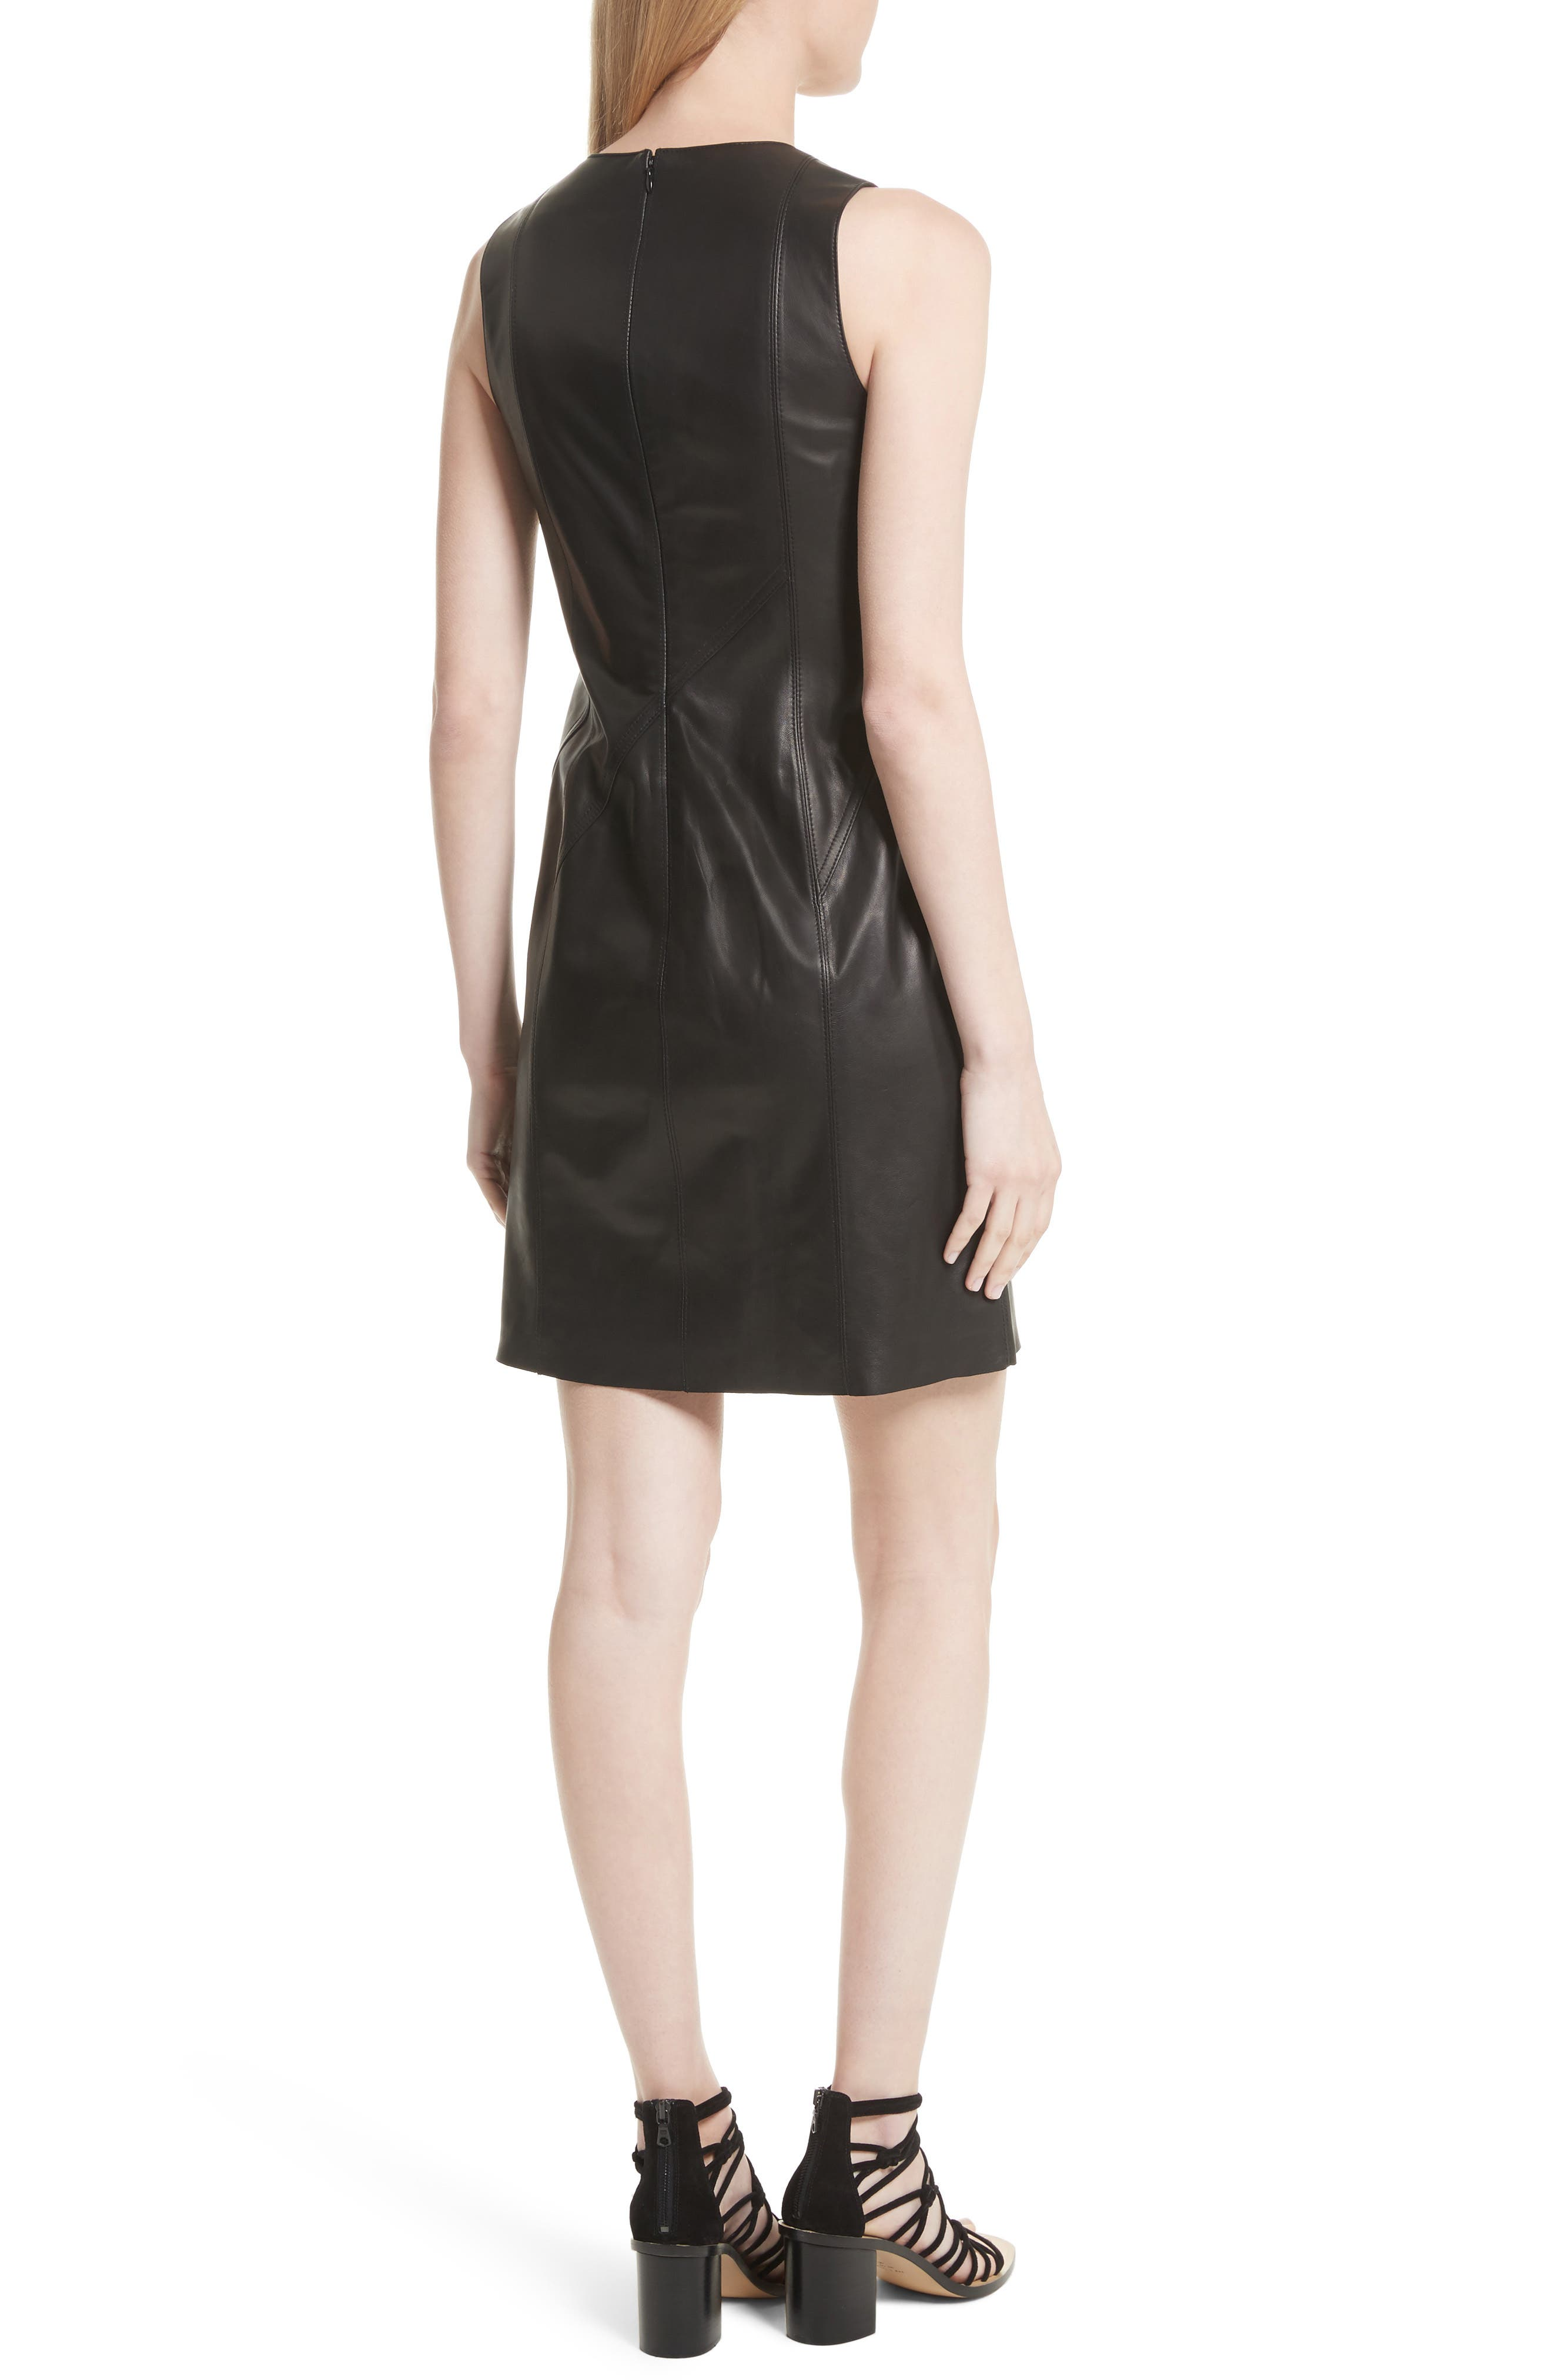 Loxley Leather Dress,                             Alternate thumbnail 2, color,                             001